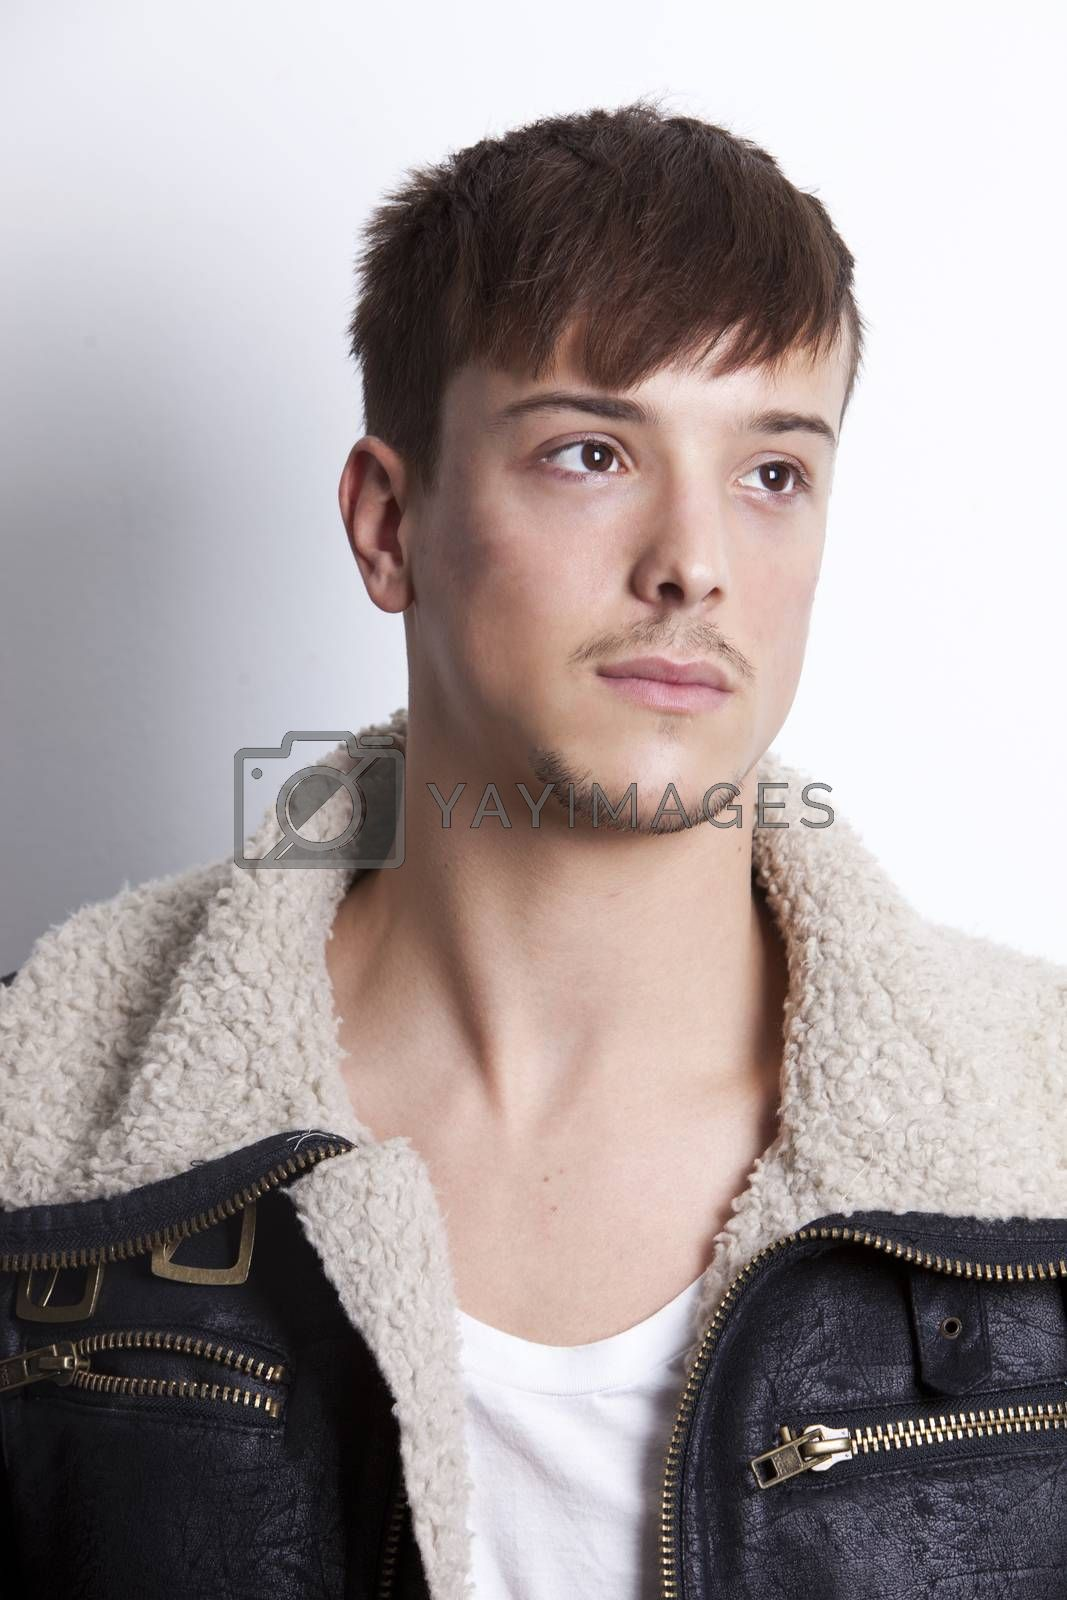 Thoughtful young man looking away against white background